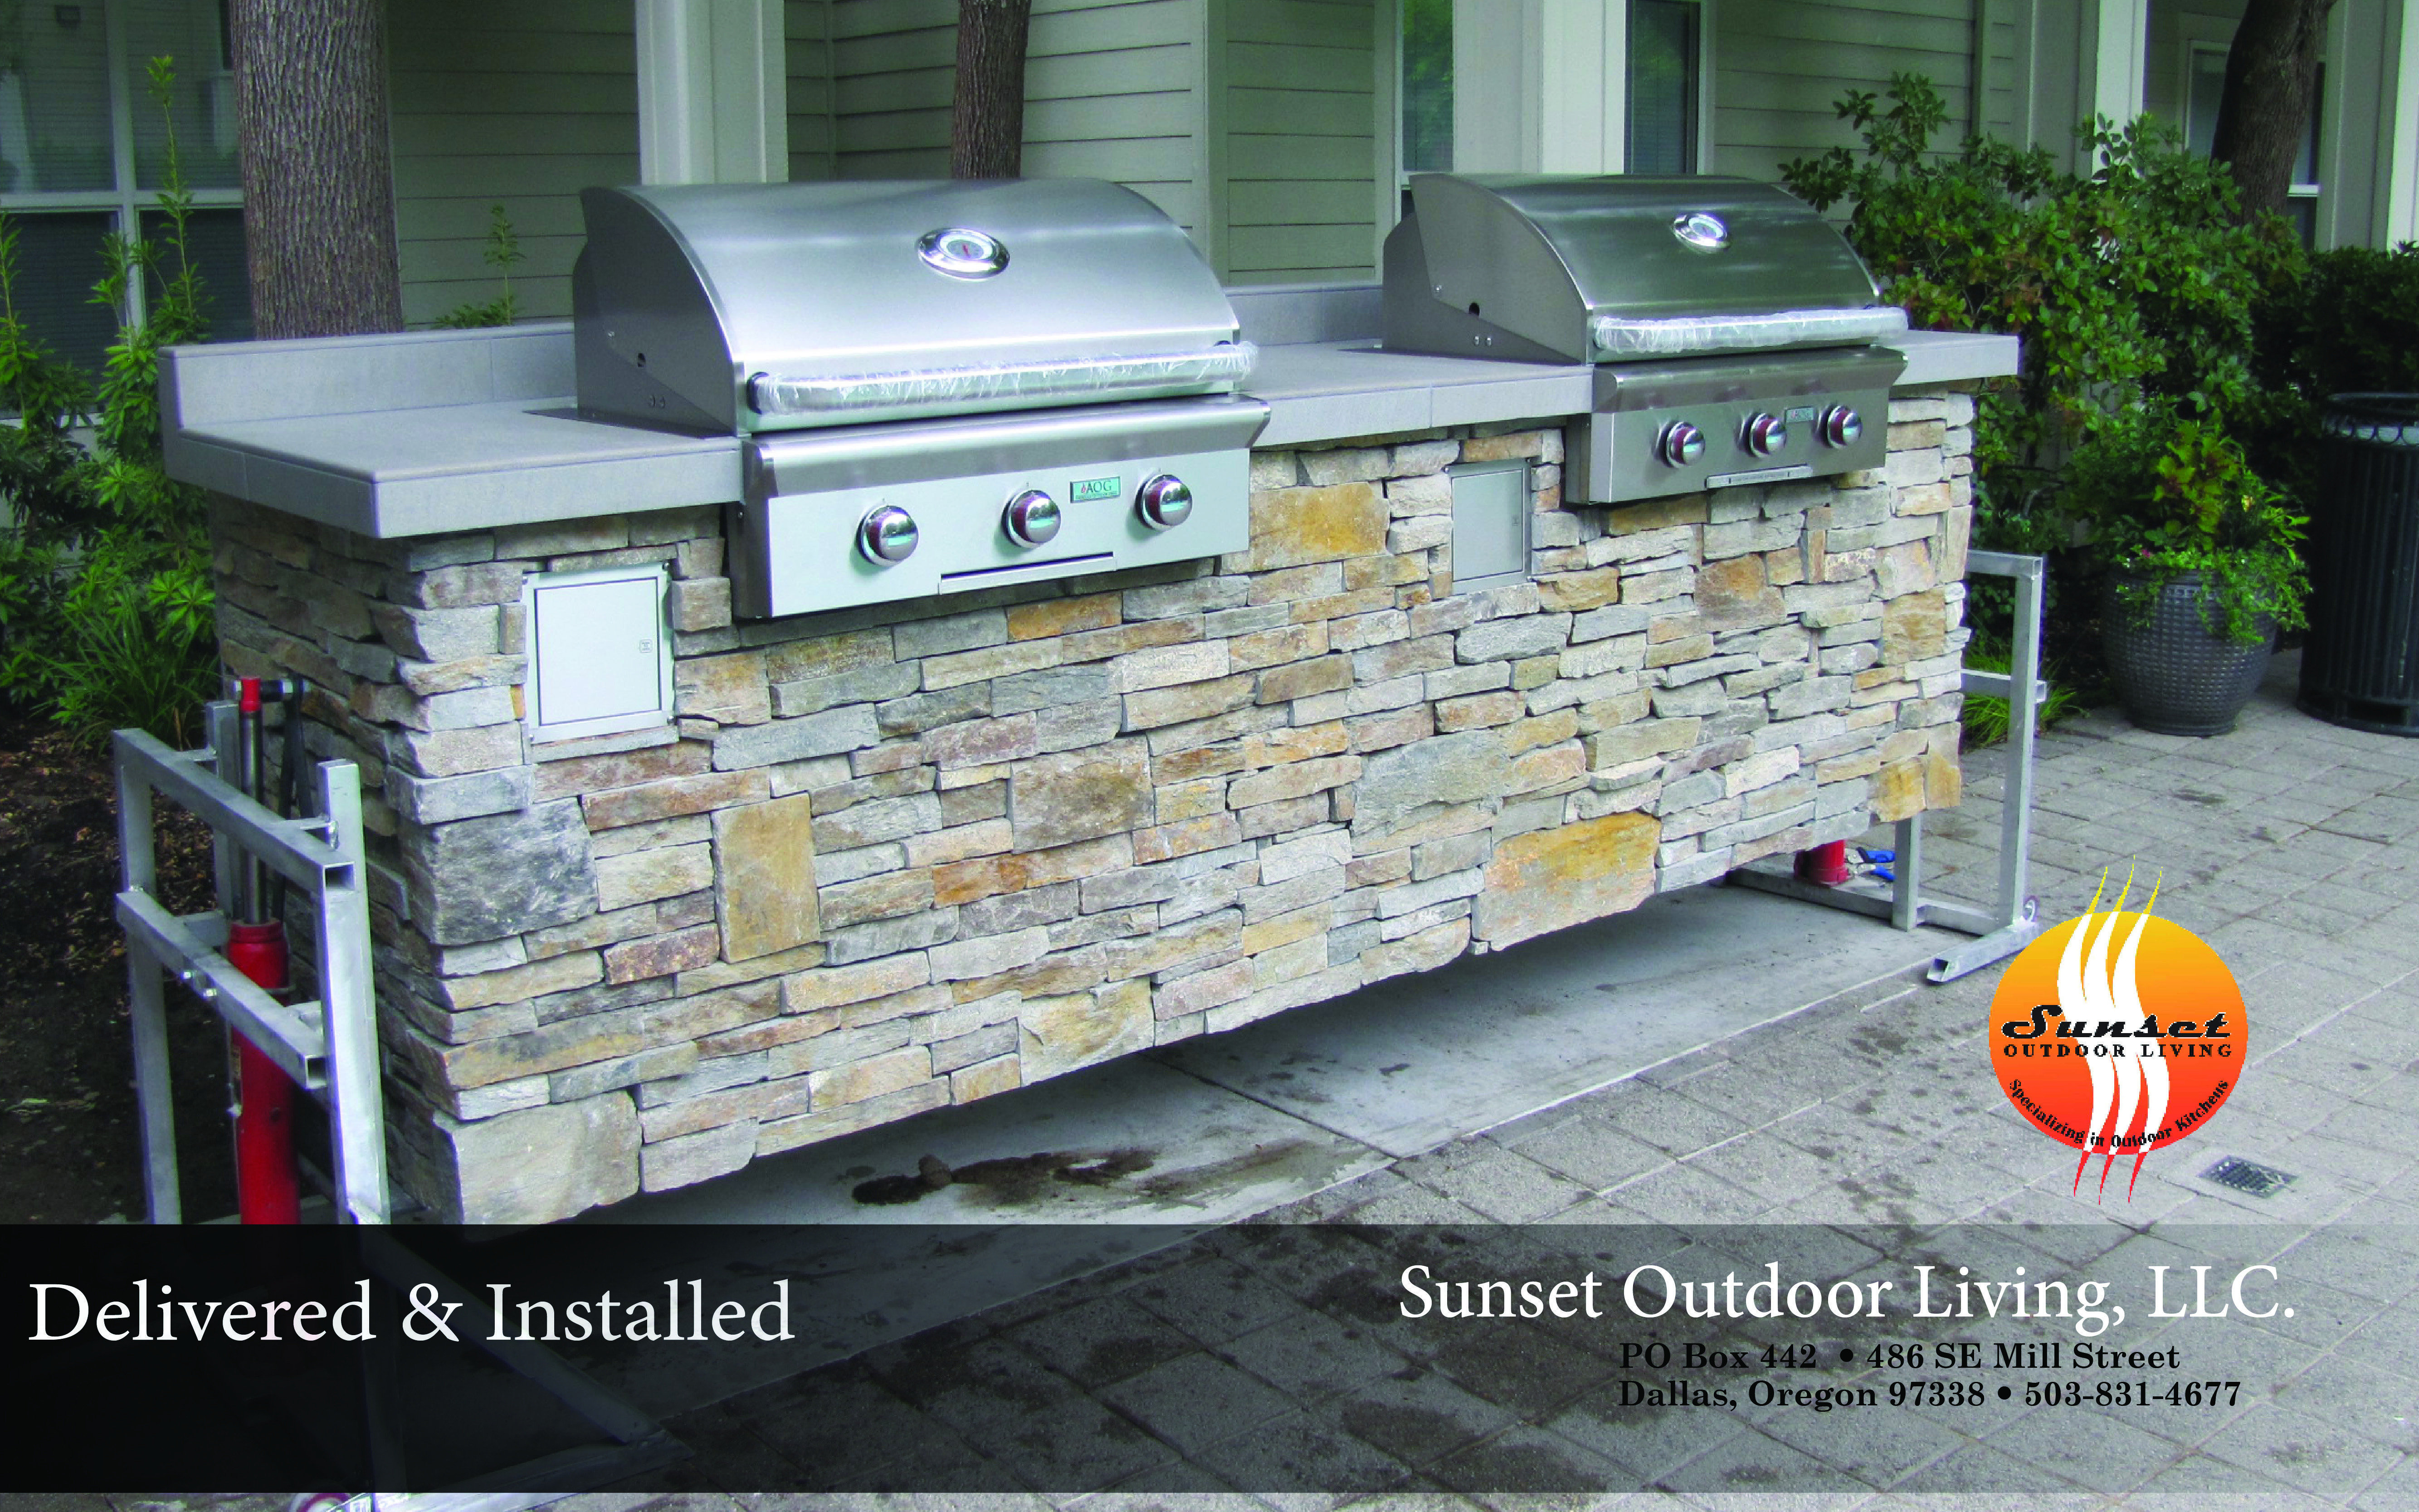 Sunset Outdoor Living Llc Custom Outdoor Kitchens And Fire Features Installation Installed Business Home L Outdoor Entertaining Outdoor Living Outdoor